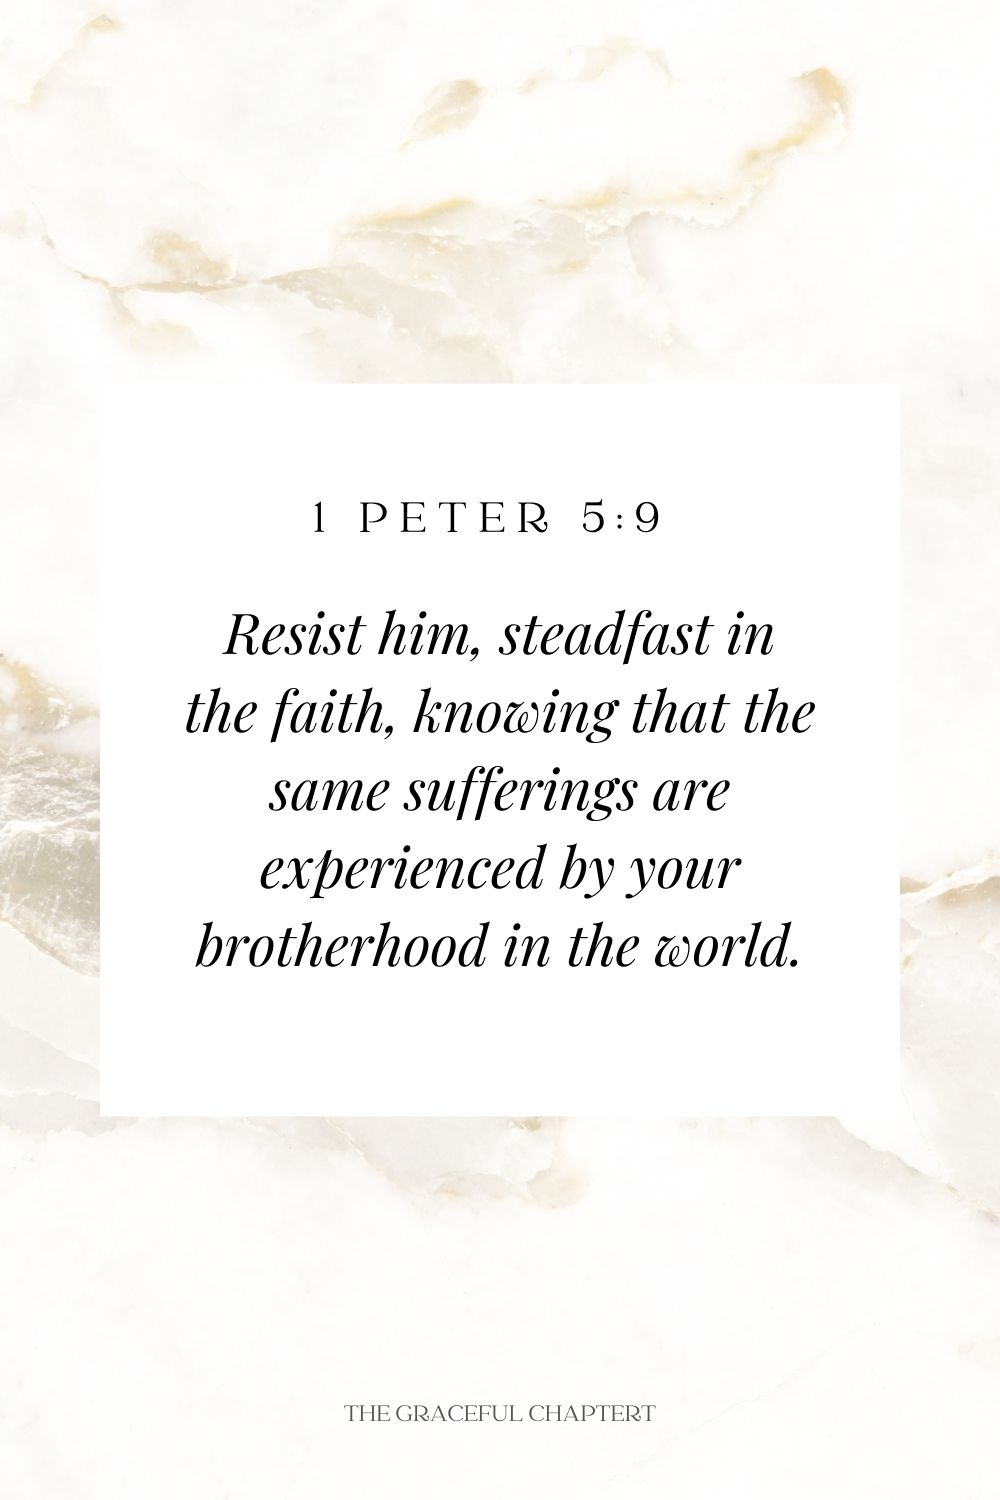 Resist him, steadfast in the faith, knowing that the same sufferings are experienced by your brotherhood in the world. 1 Peter 5:9